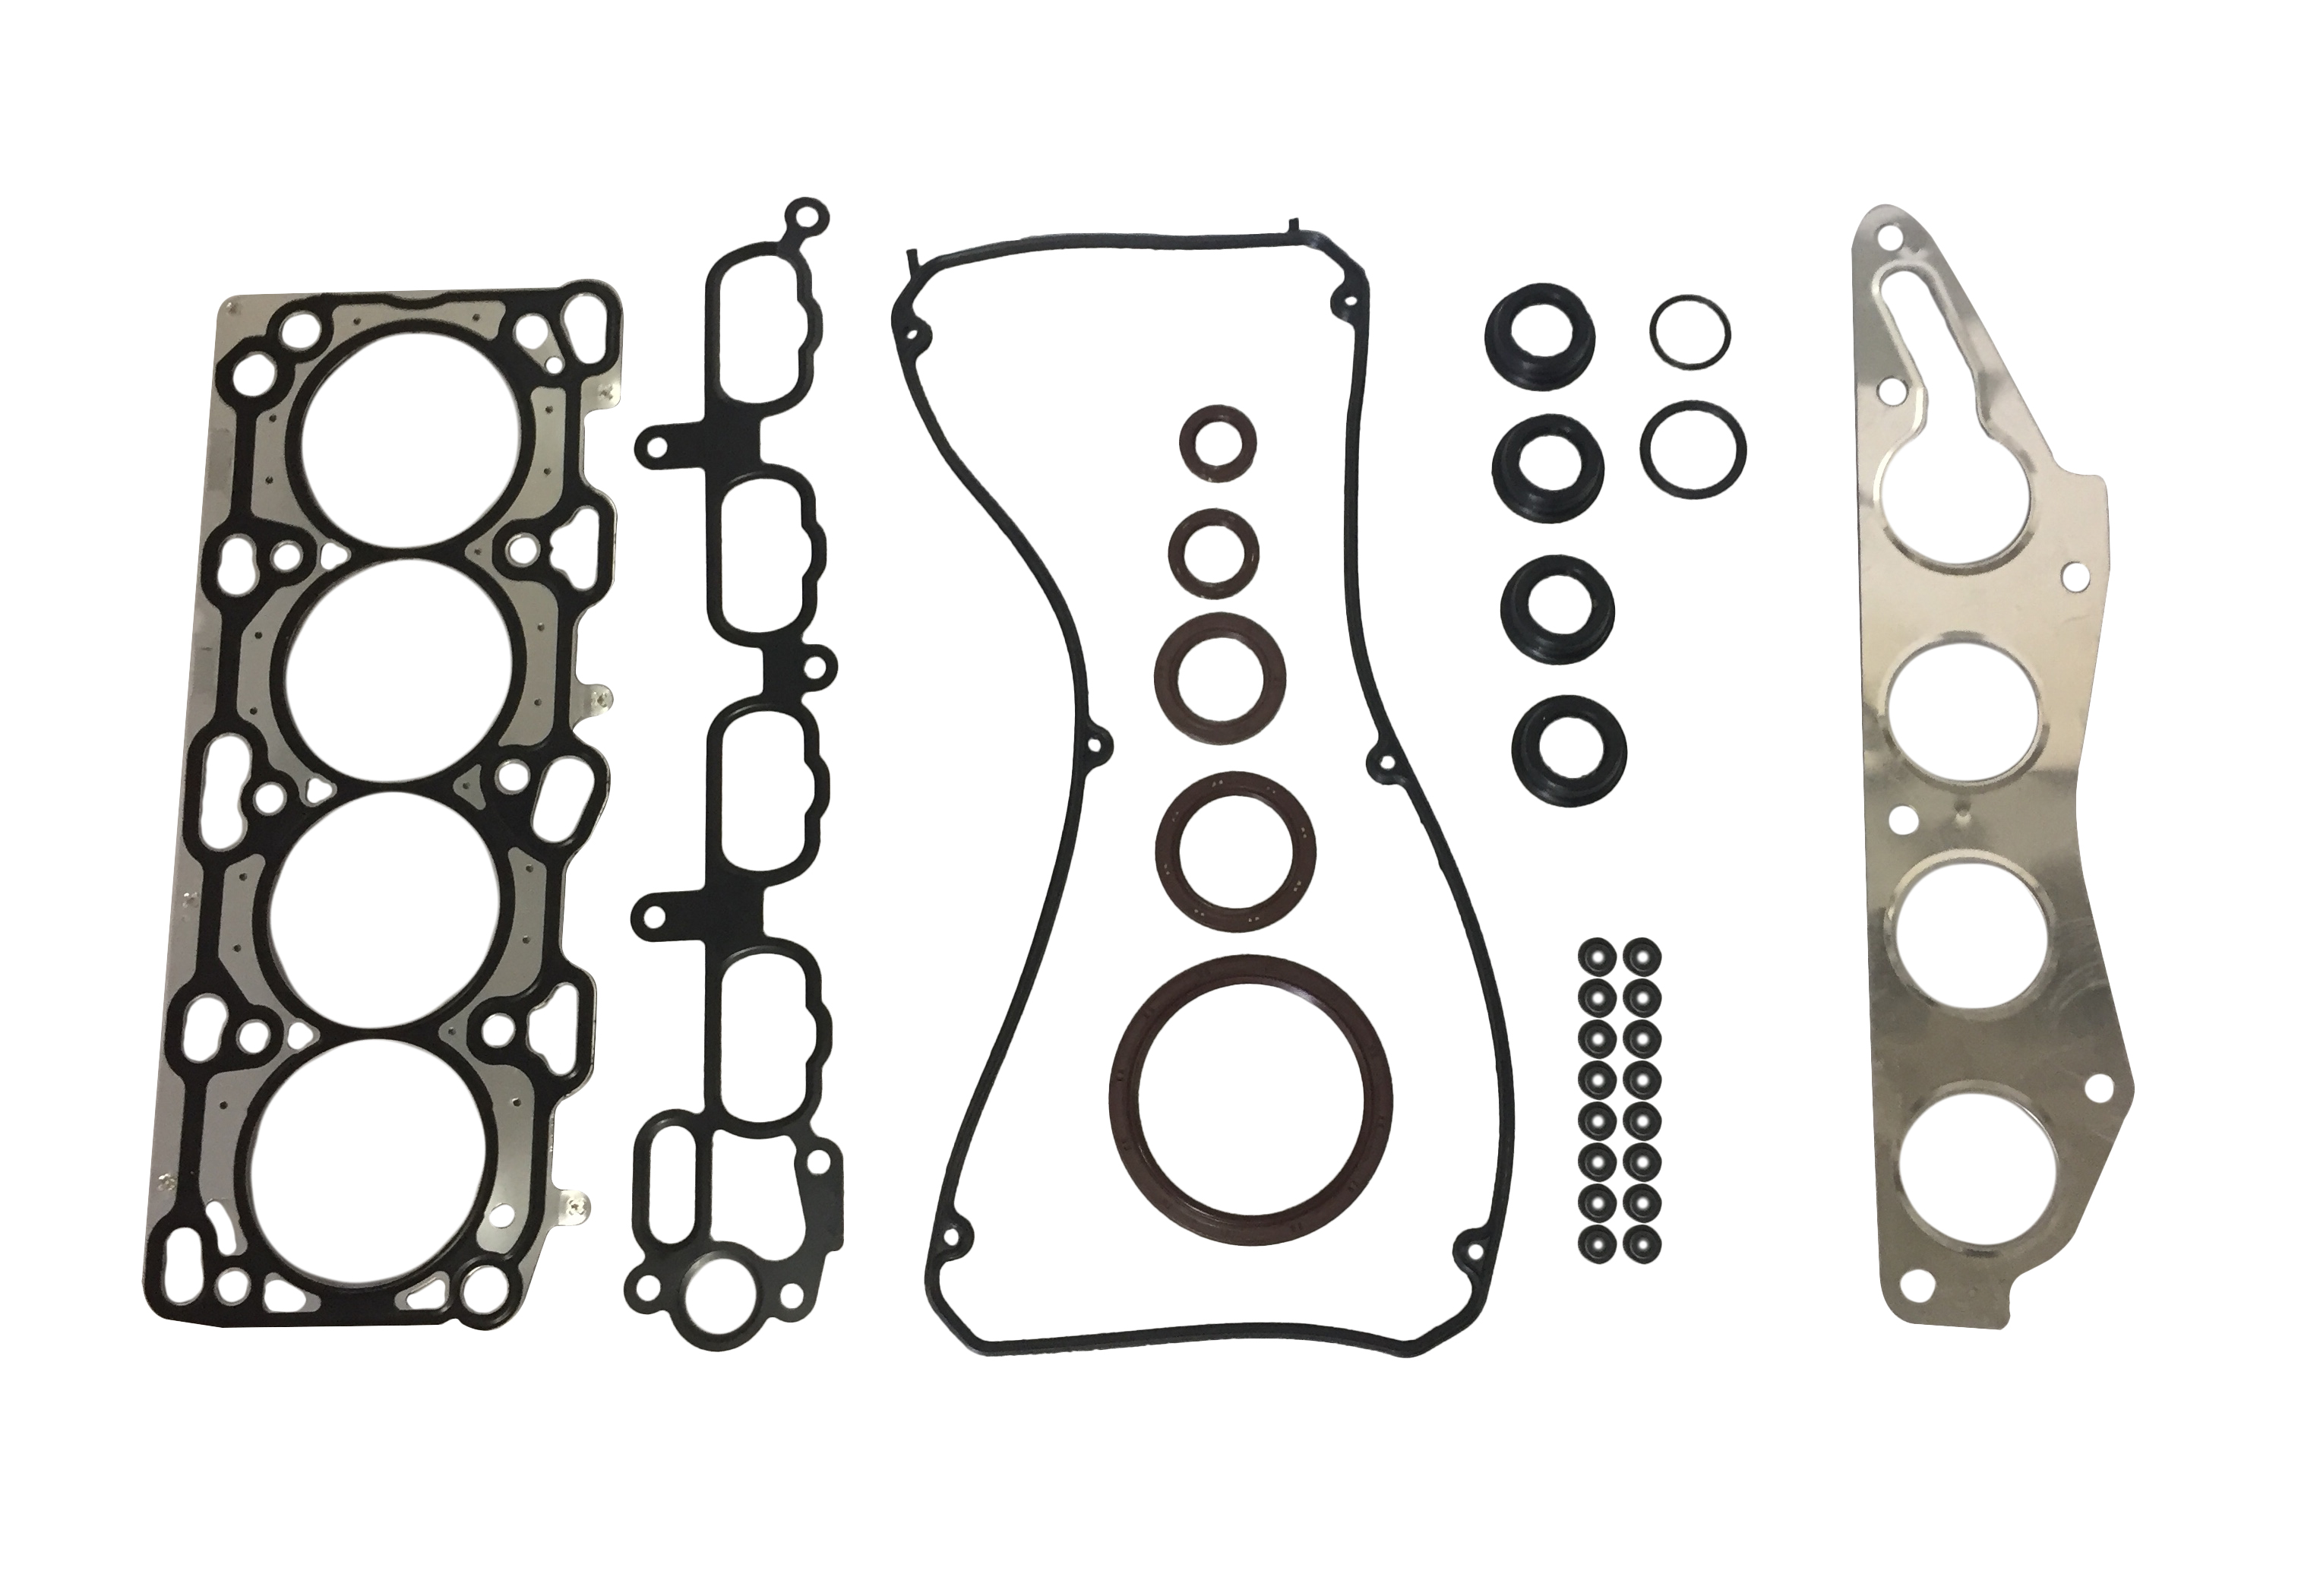 Gasket set cylinder head gasket Mitsubishi Grandis with 2.4 MIVEC 4G69 NEW